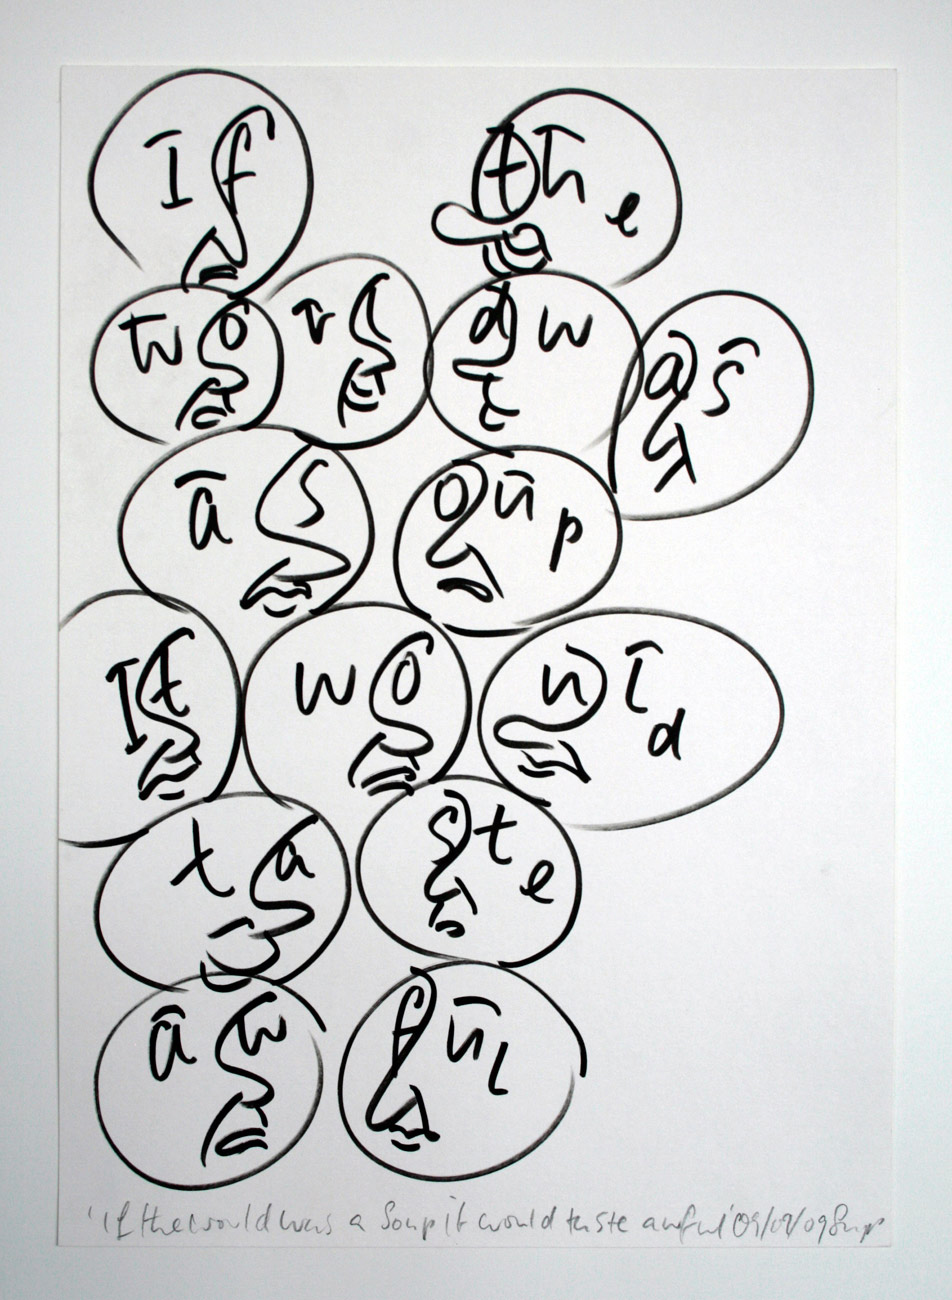 Sam Porritt, If The World Was A Soup It Would Taste Awful, 2009. Pigment Ink on Paper; 42 x 29 cm. Image courtesy of the artist.